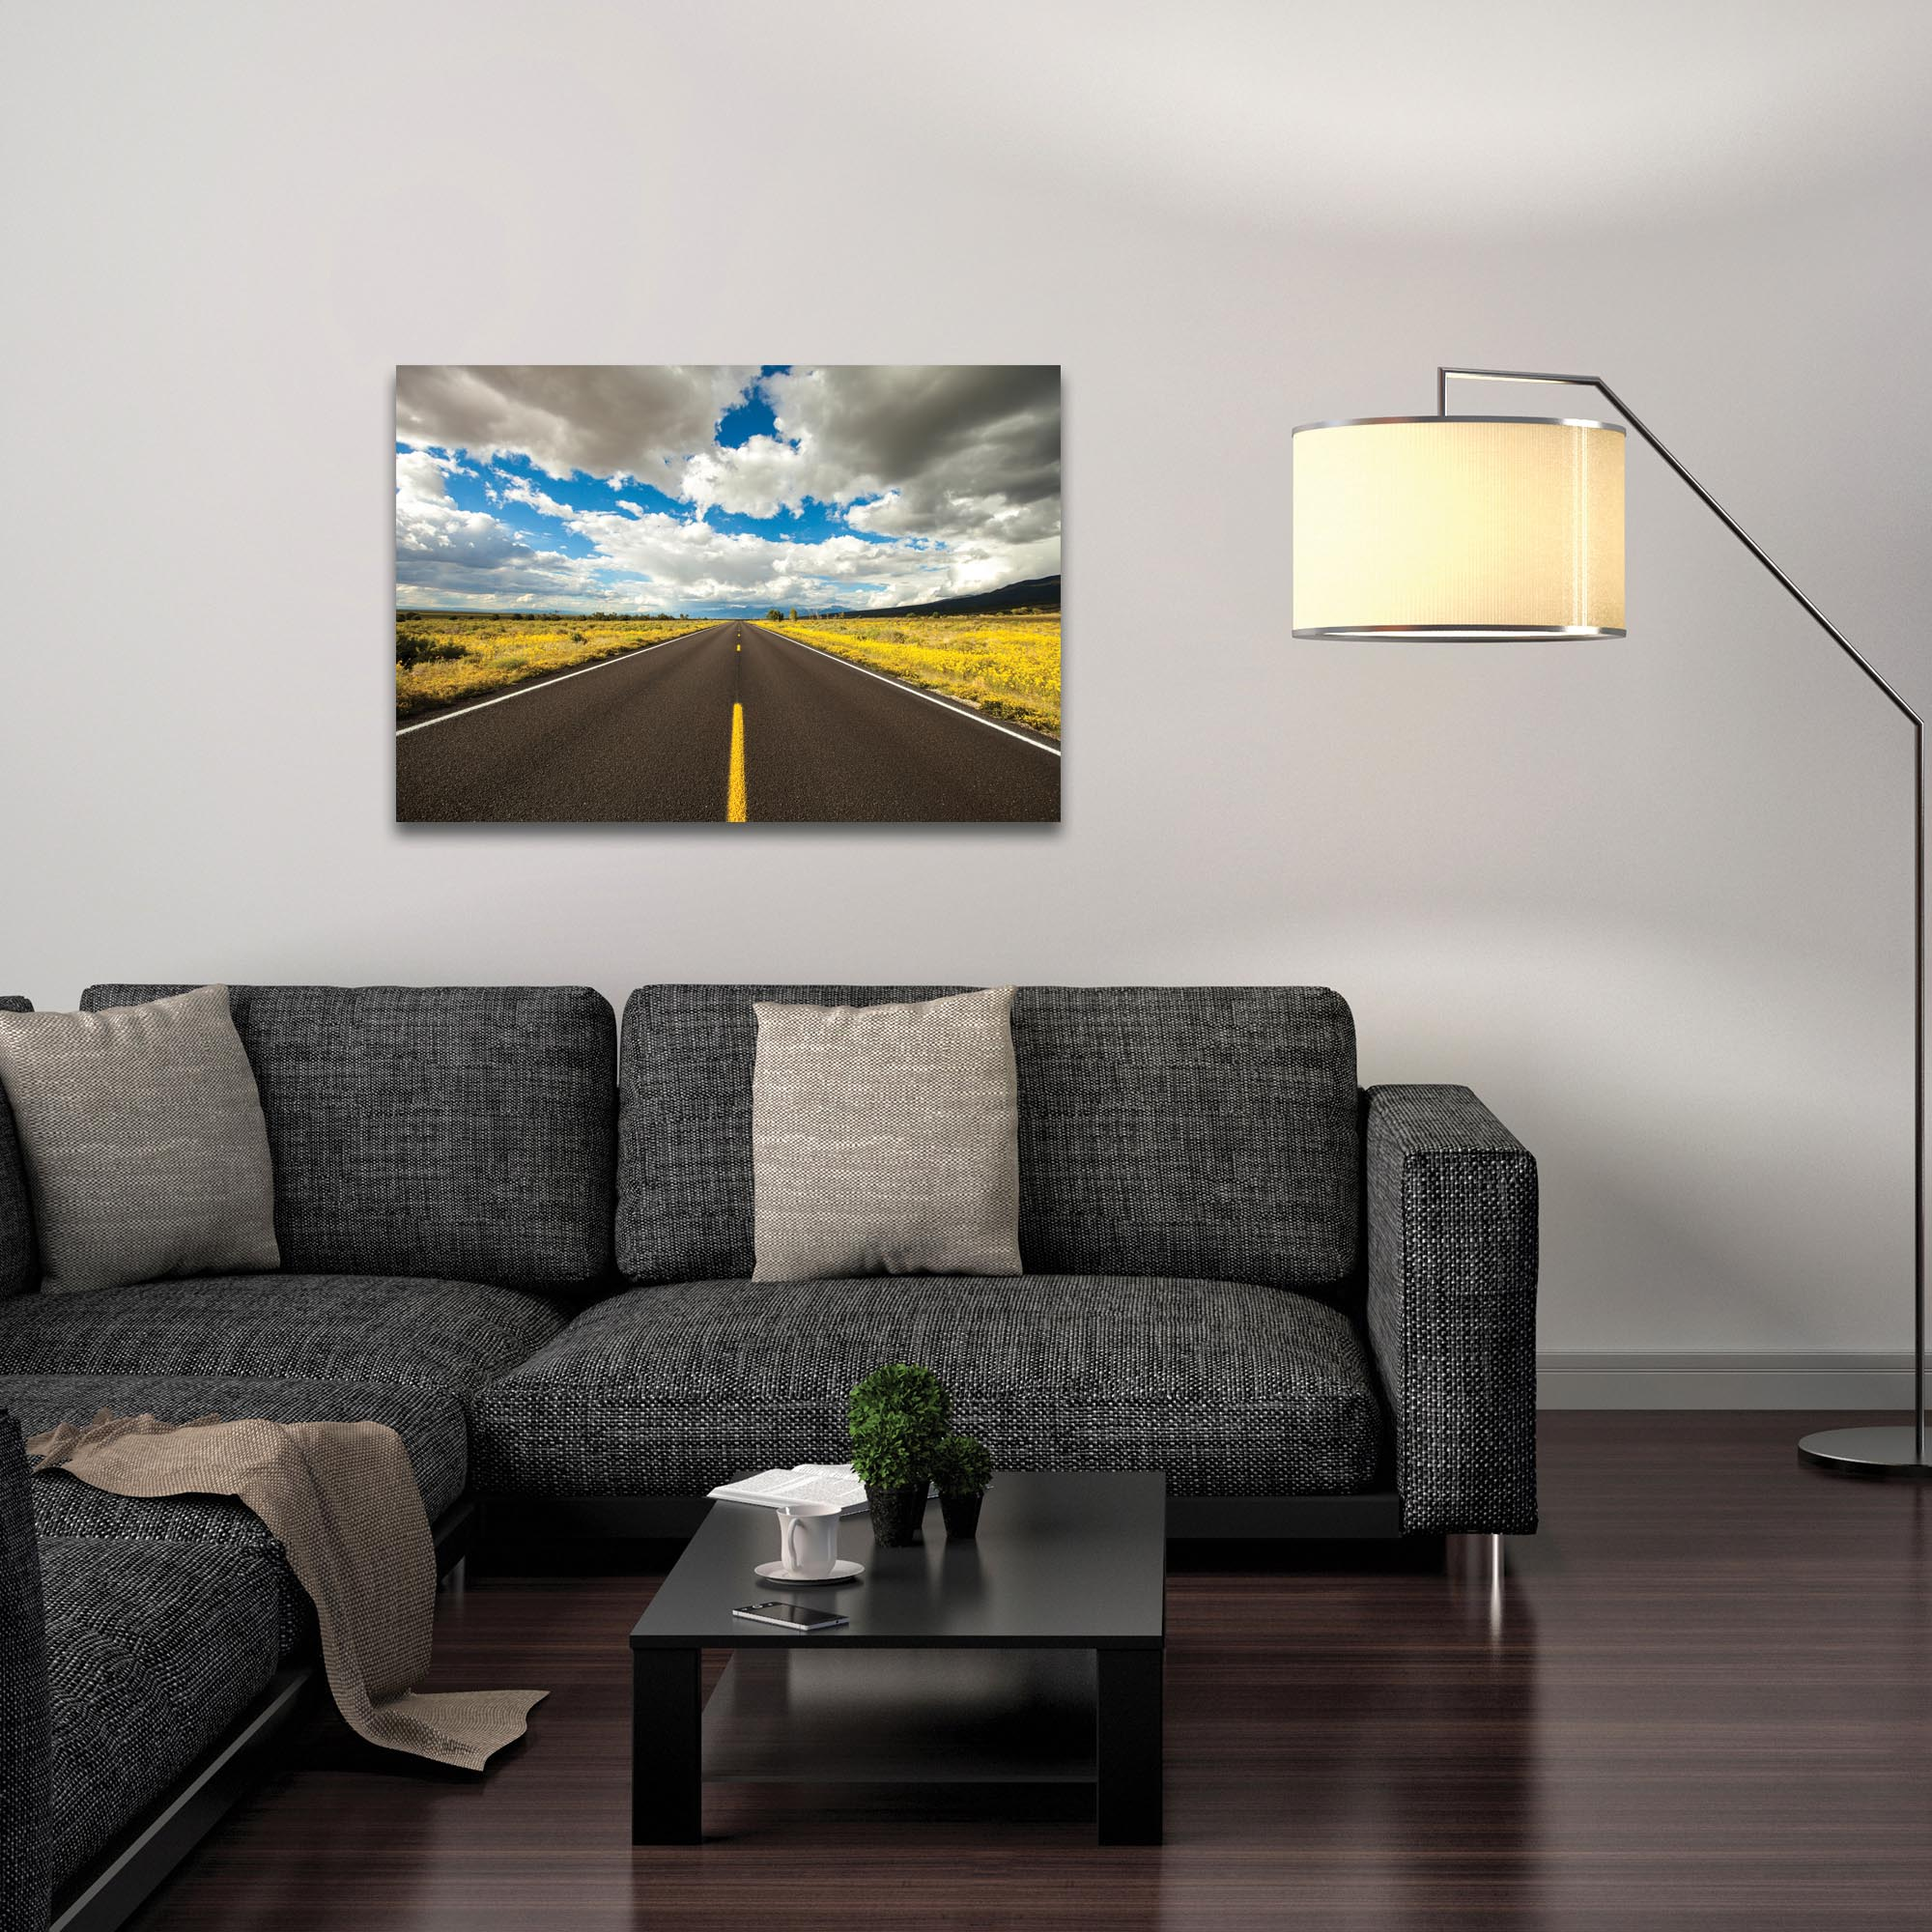 Americana Wall Art 'Road Trip' - Open Road Decor on Metal or Plexiglass - Lifestyle View